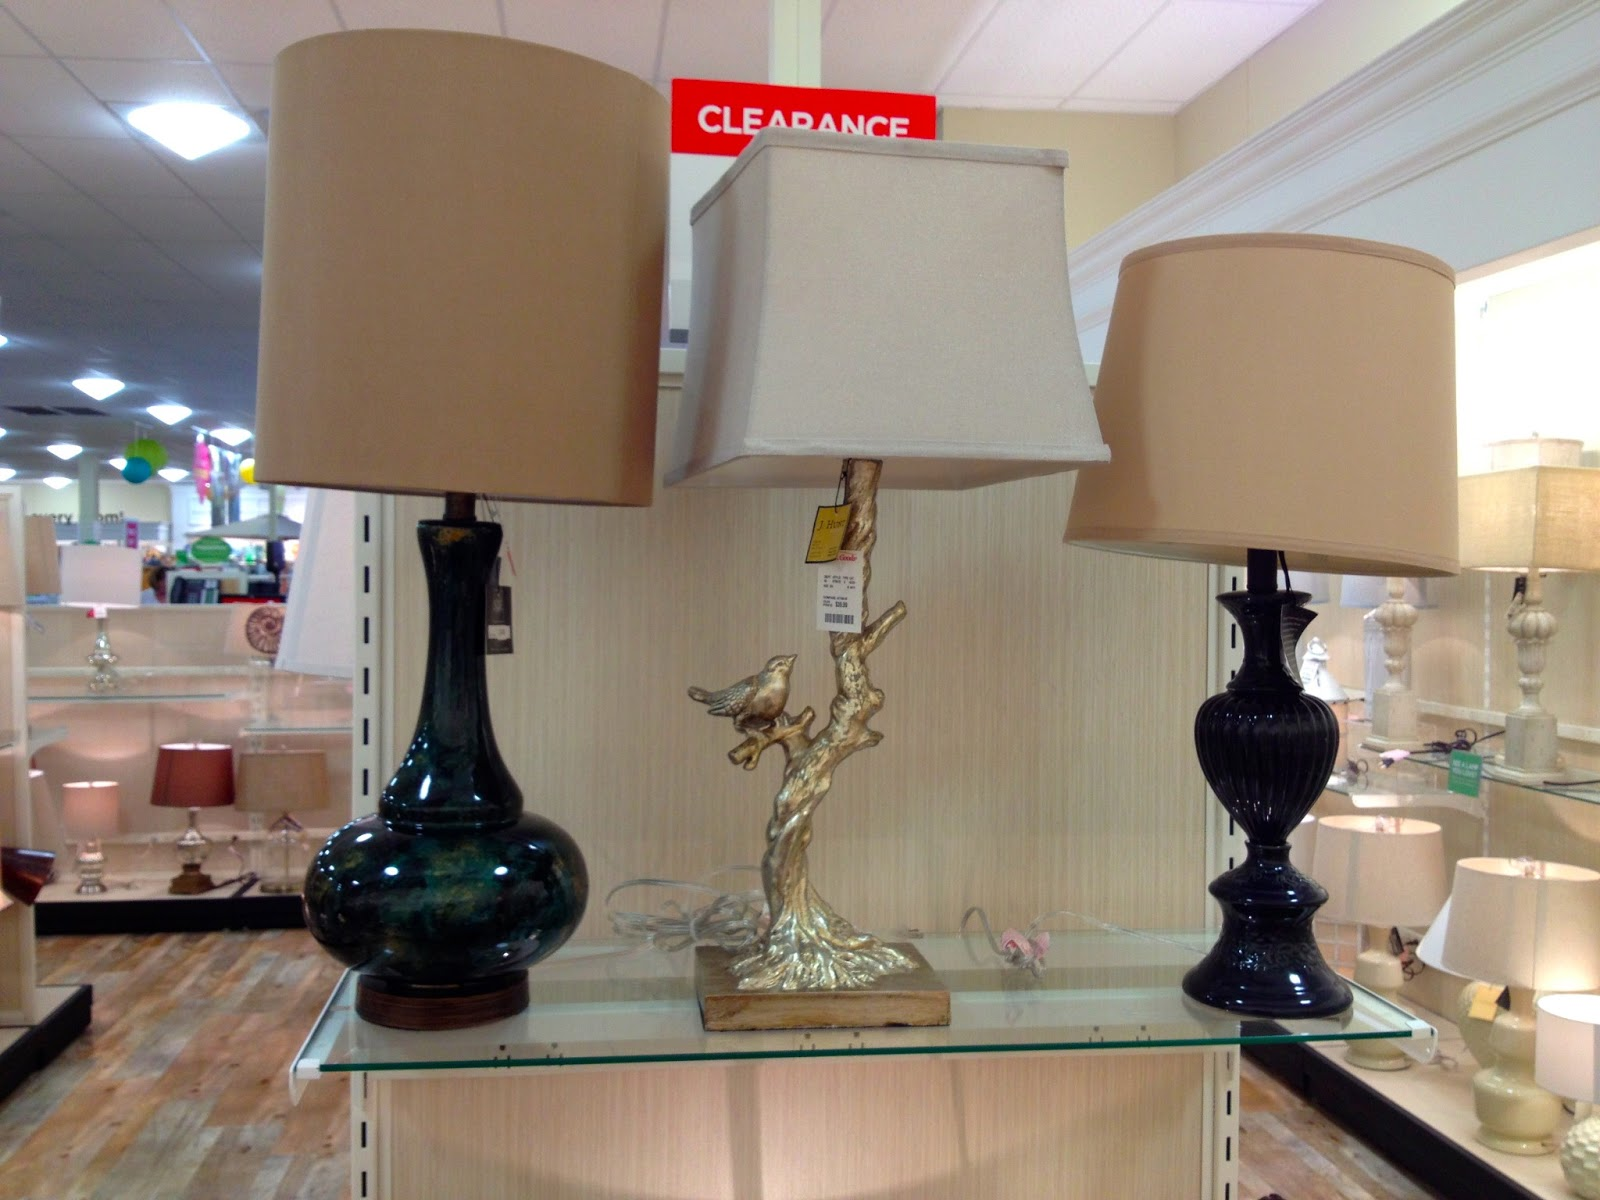 Mel & Liza: Lamp Clearance at Home Goods